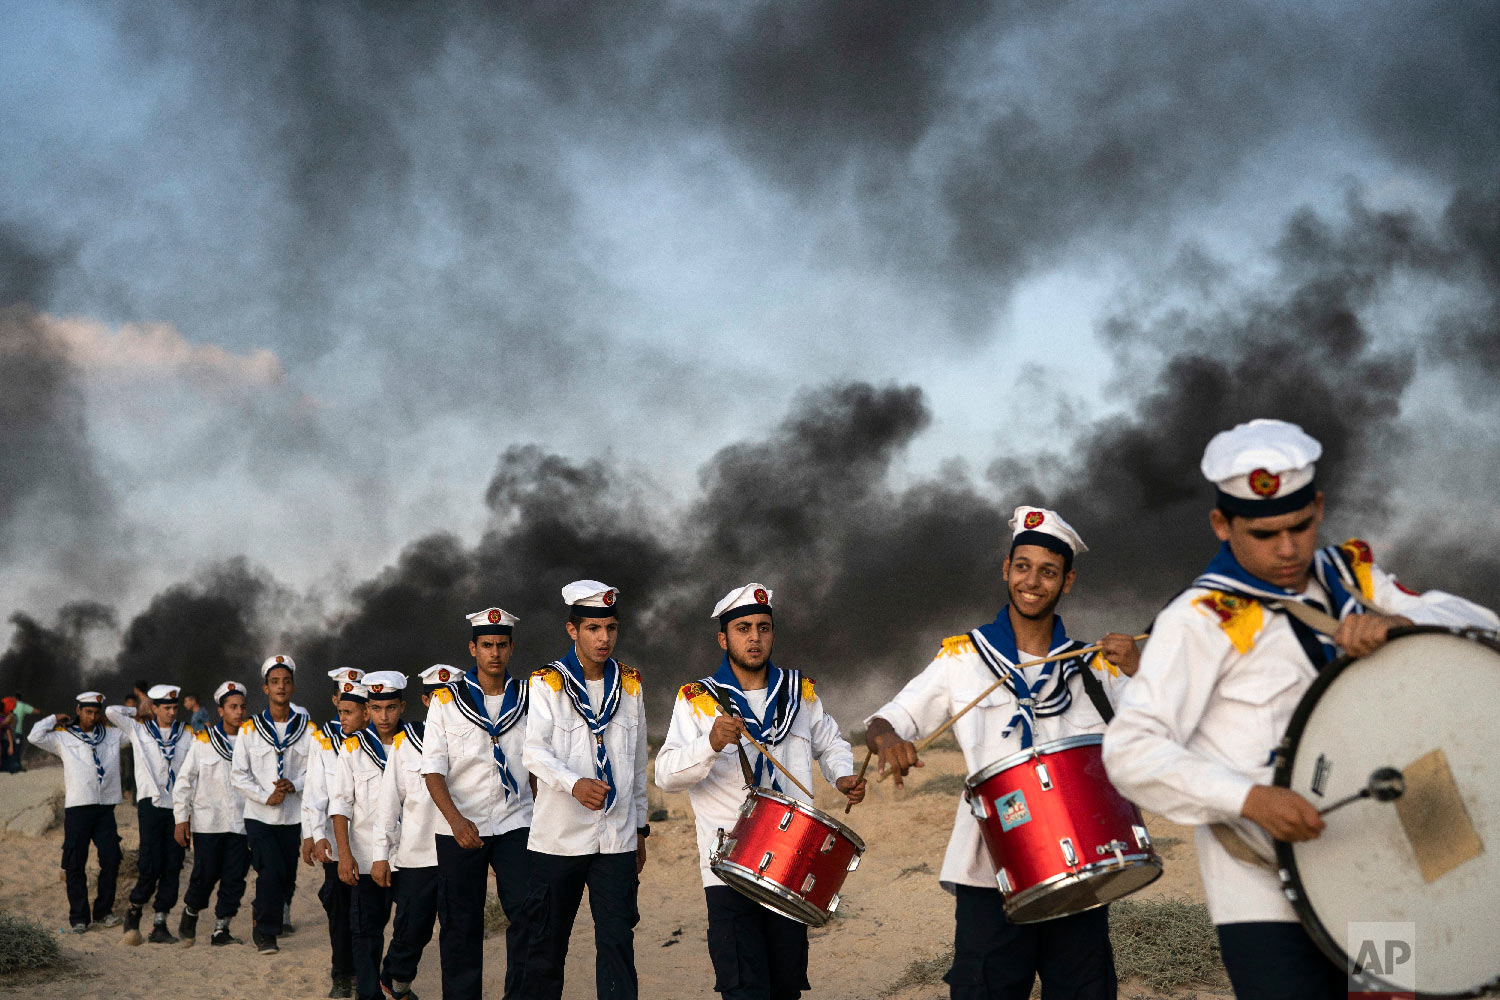 Palestinian boy scouts march during a protest on the beach near the border with Israel in Beit Lahiya, northern Gaza Strip, Sept. 10, 2018. (AP Photo/Felipe Dana)